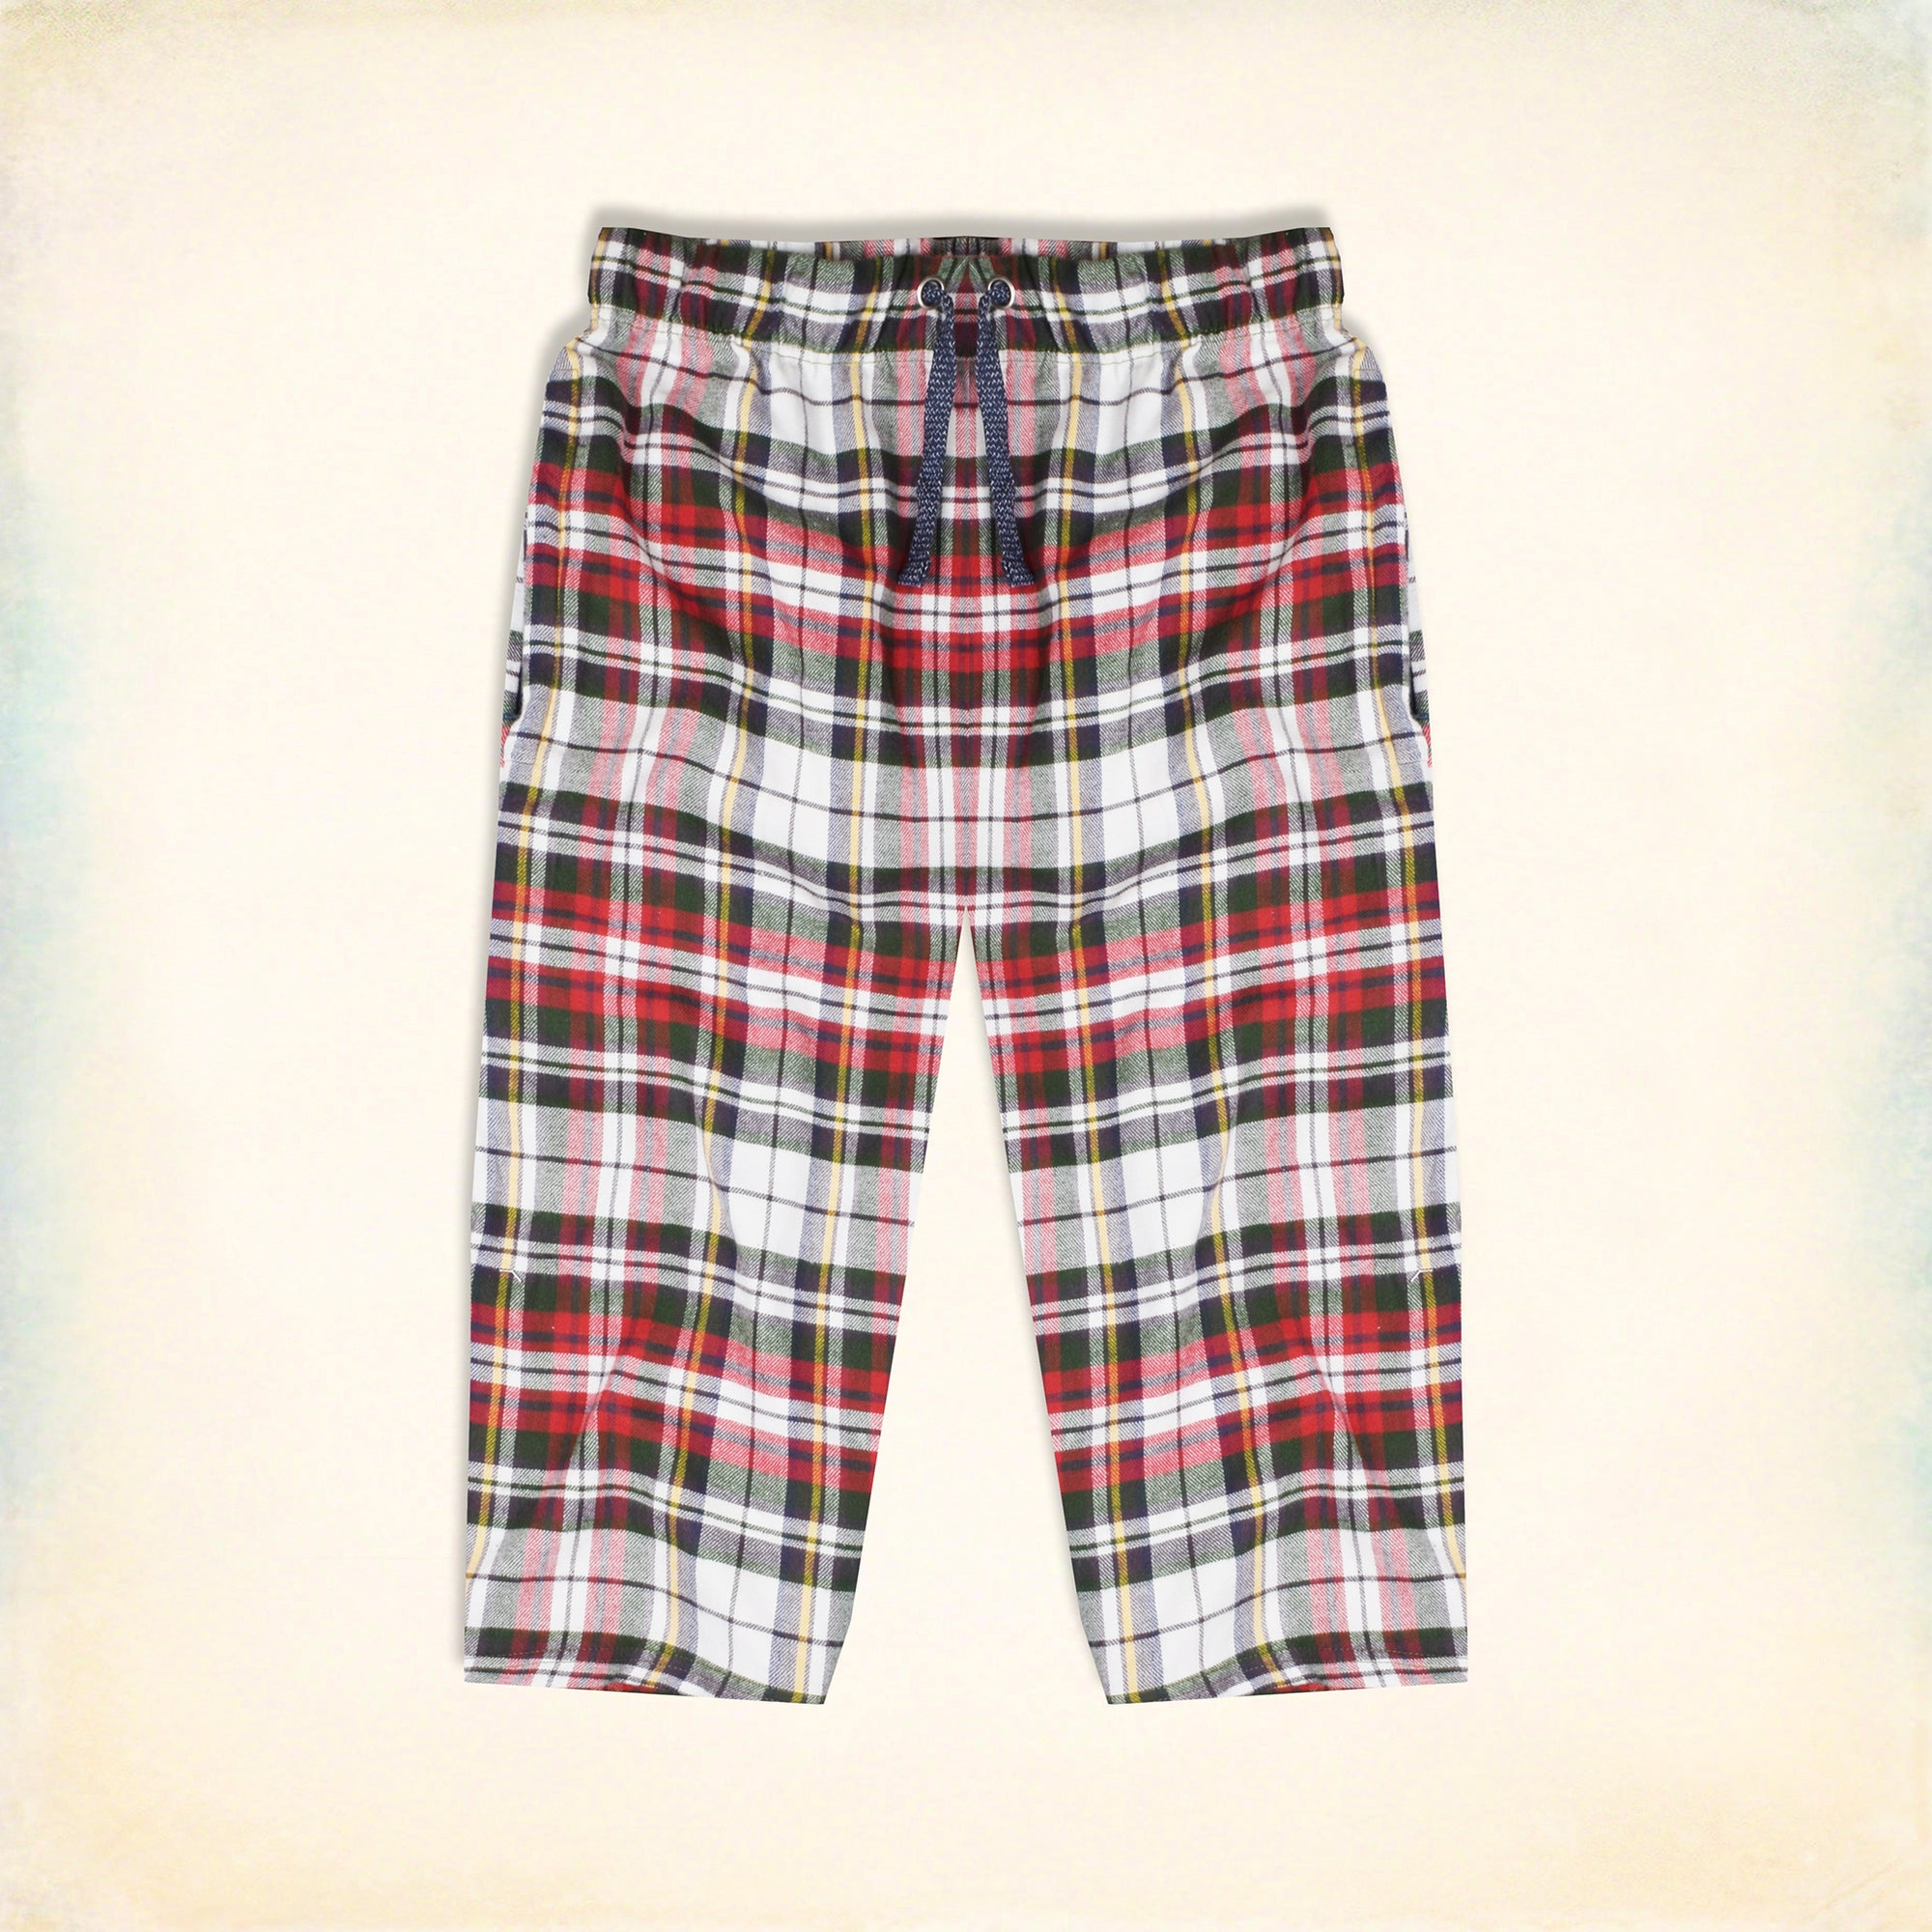 Bershka Cotton Short For Men-Multi Check-NA5277